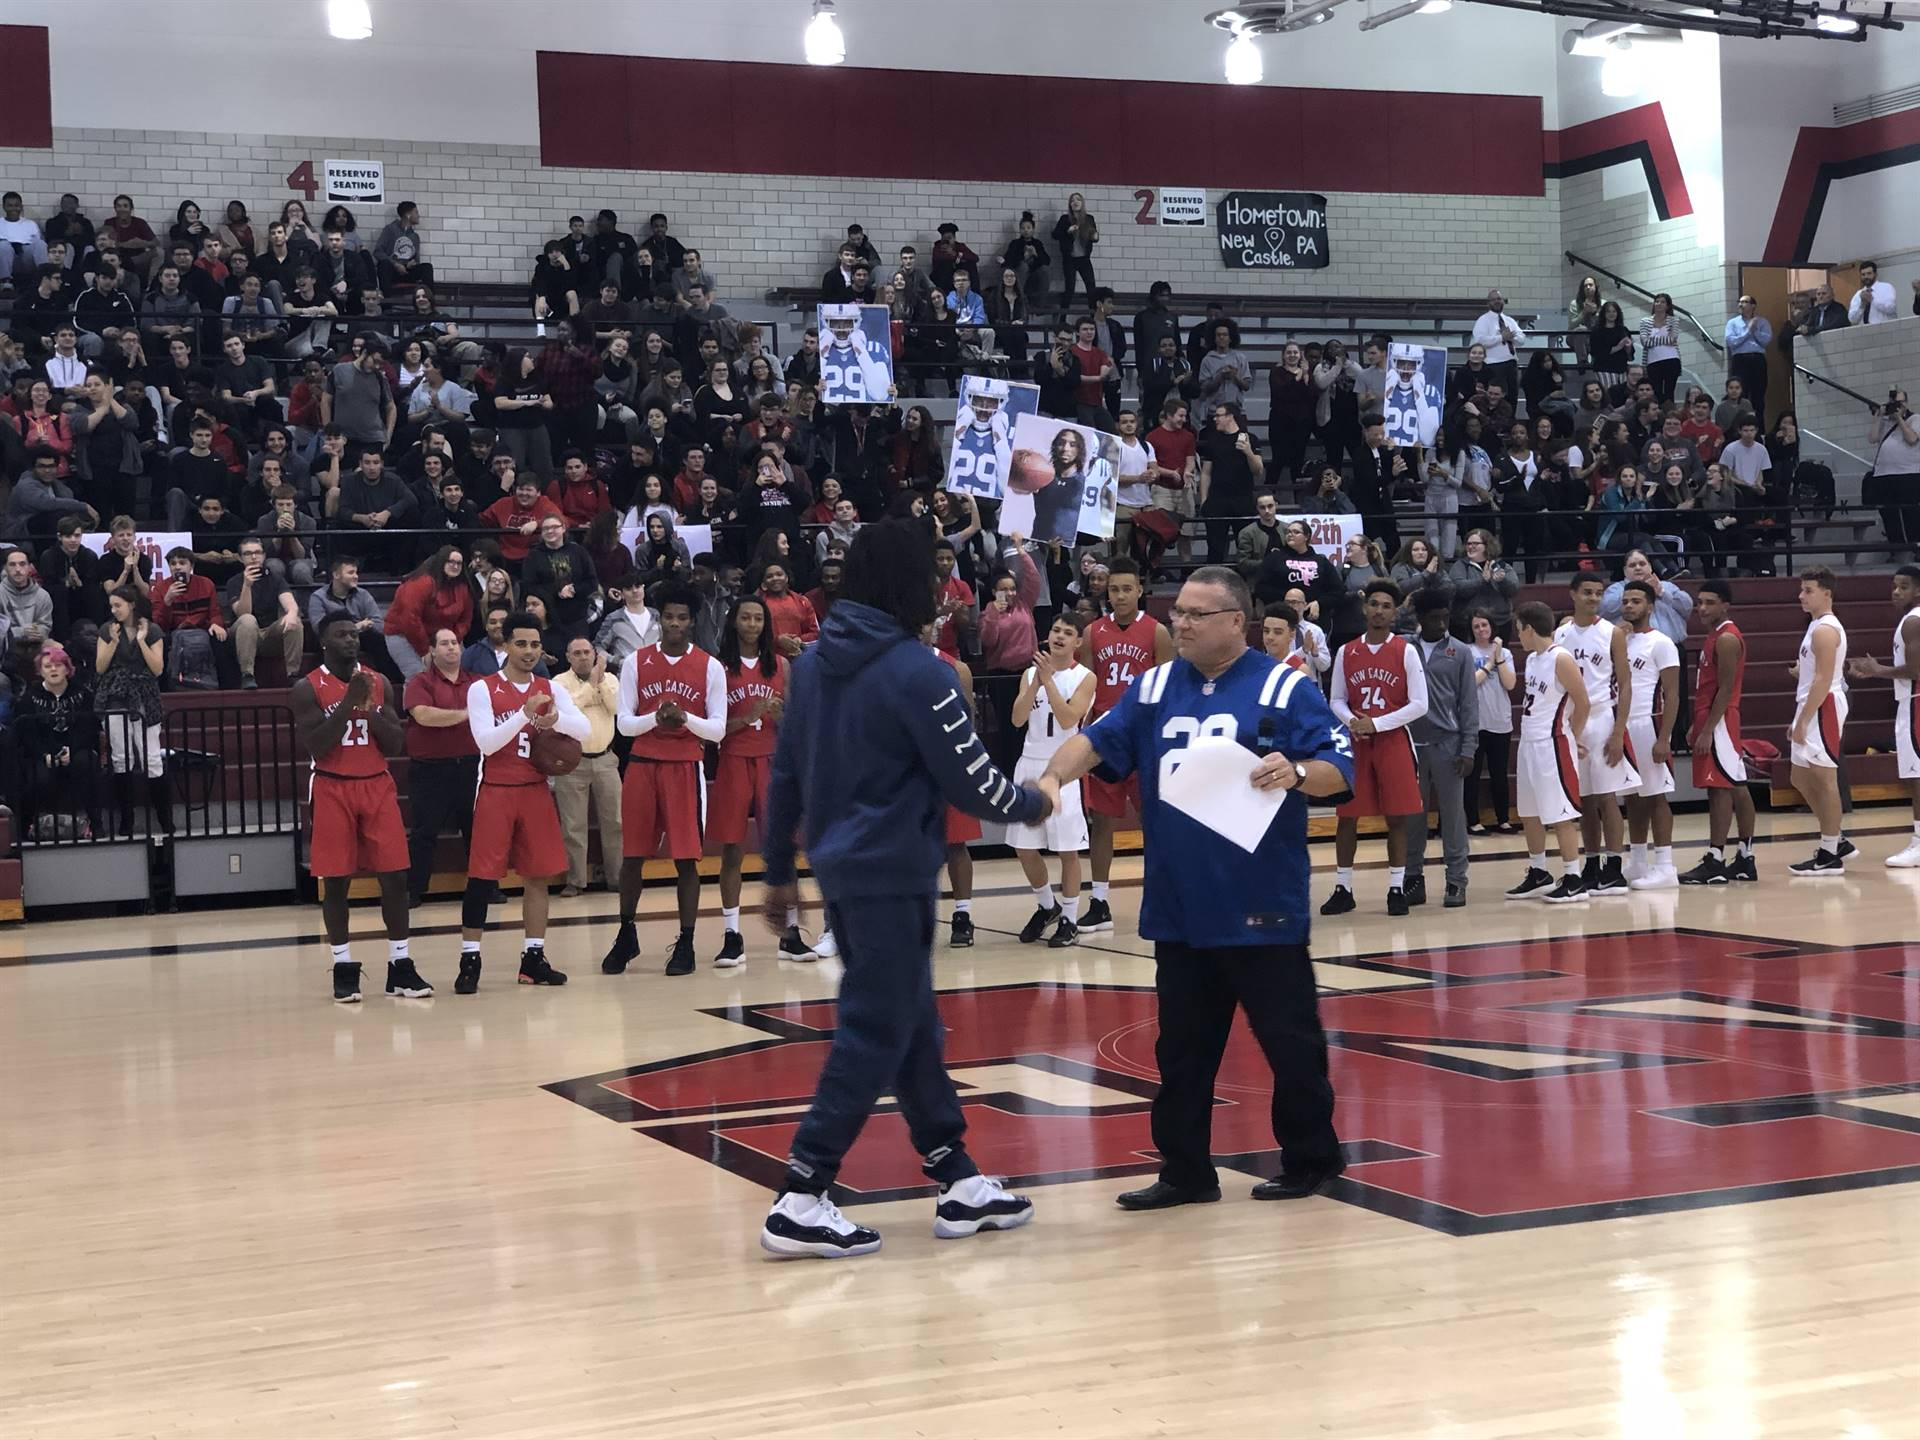 Mr. Litrenta welcomes Malik to the court